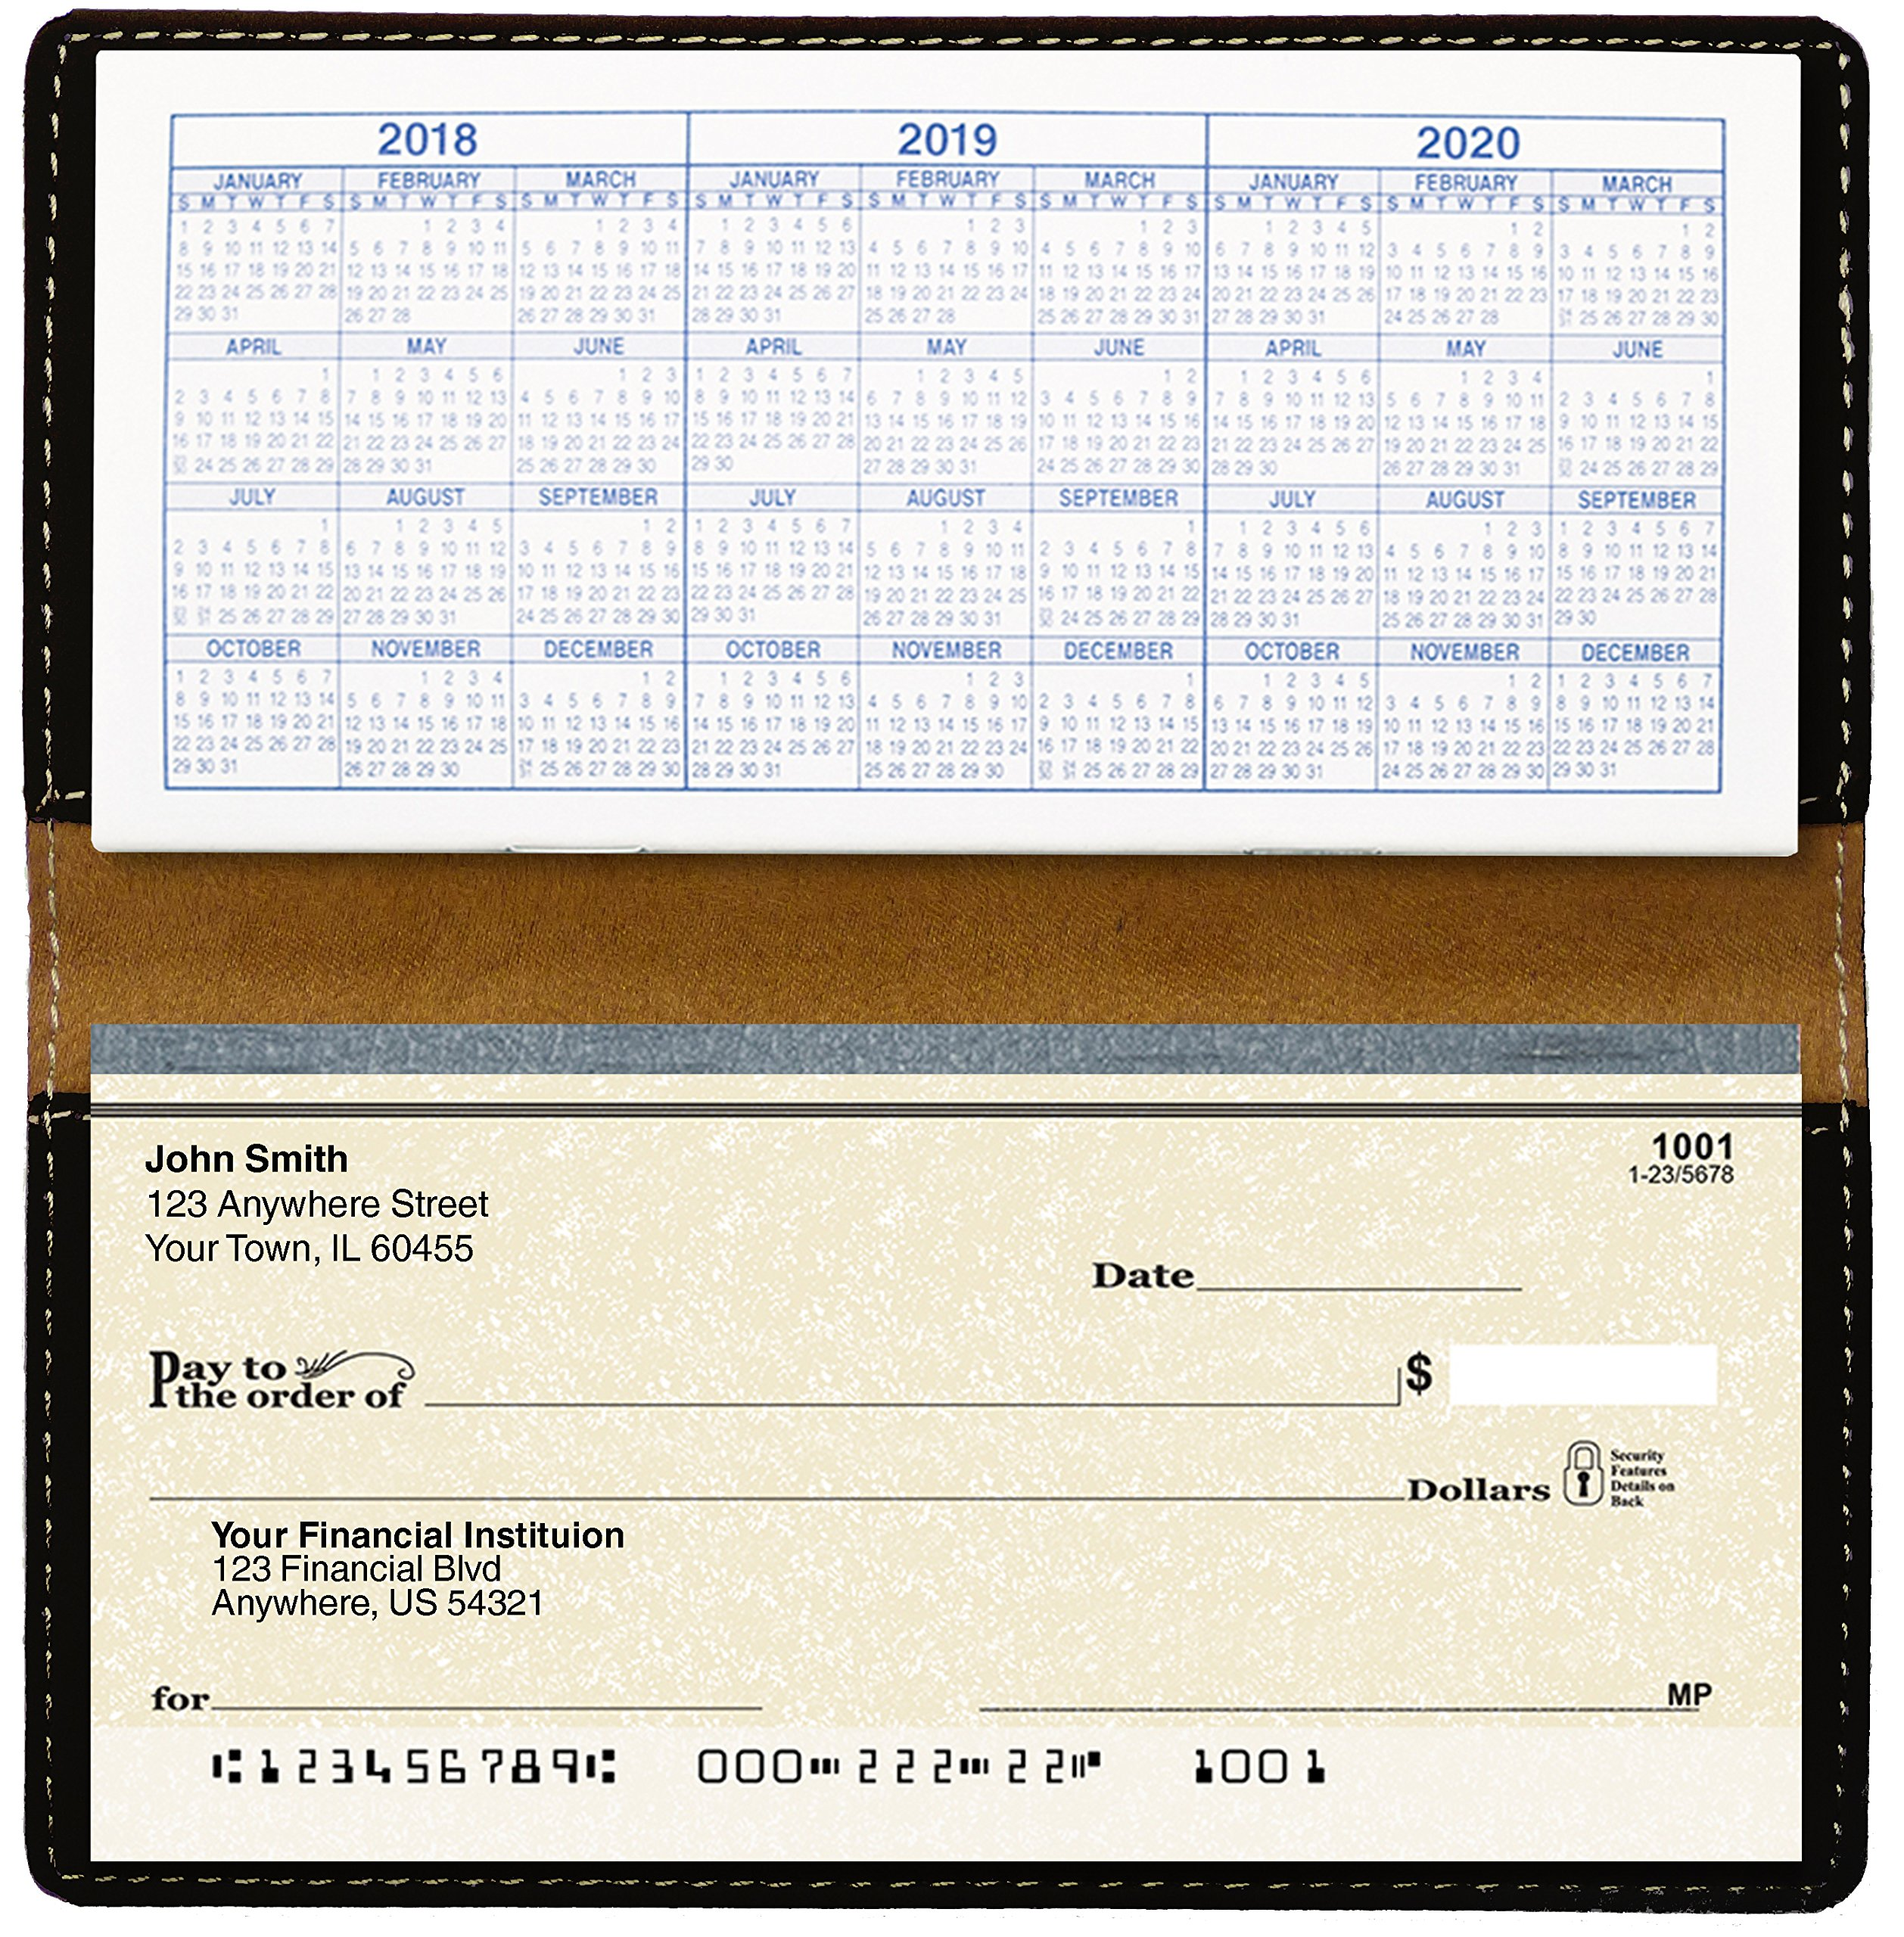 Make A Wish Laser Engraved Leatherette Checkbook Cover by Carousel Checks Inc.